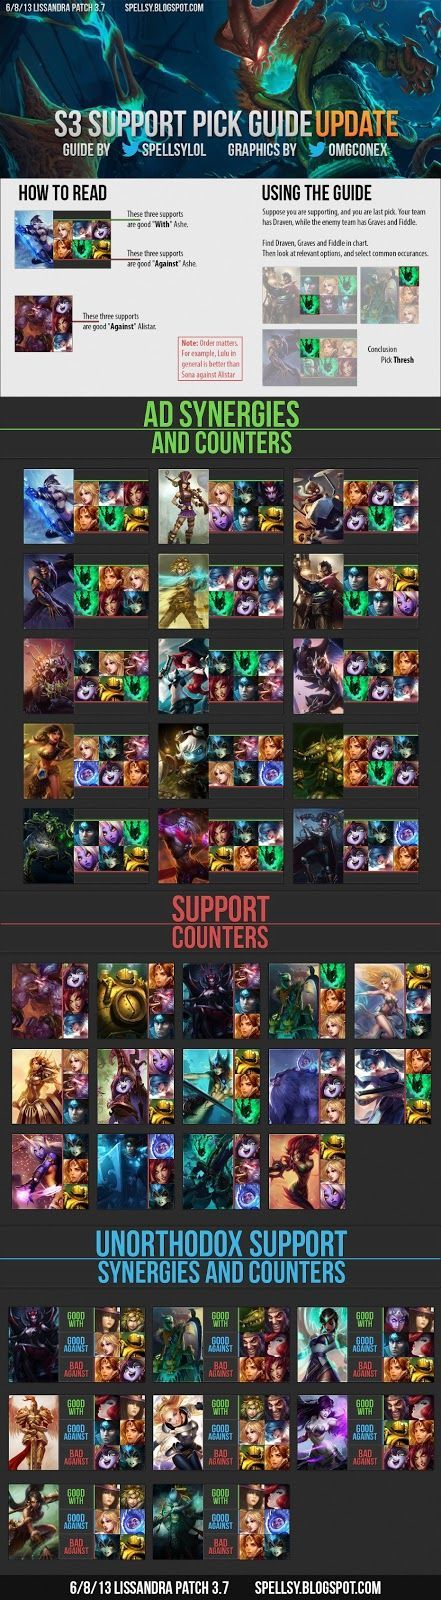 League of Legends Game Analysis: Support Pick & Counter Guide s3 Update w/ Unorthodox supports Yes.